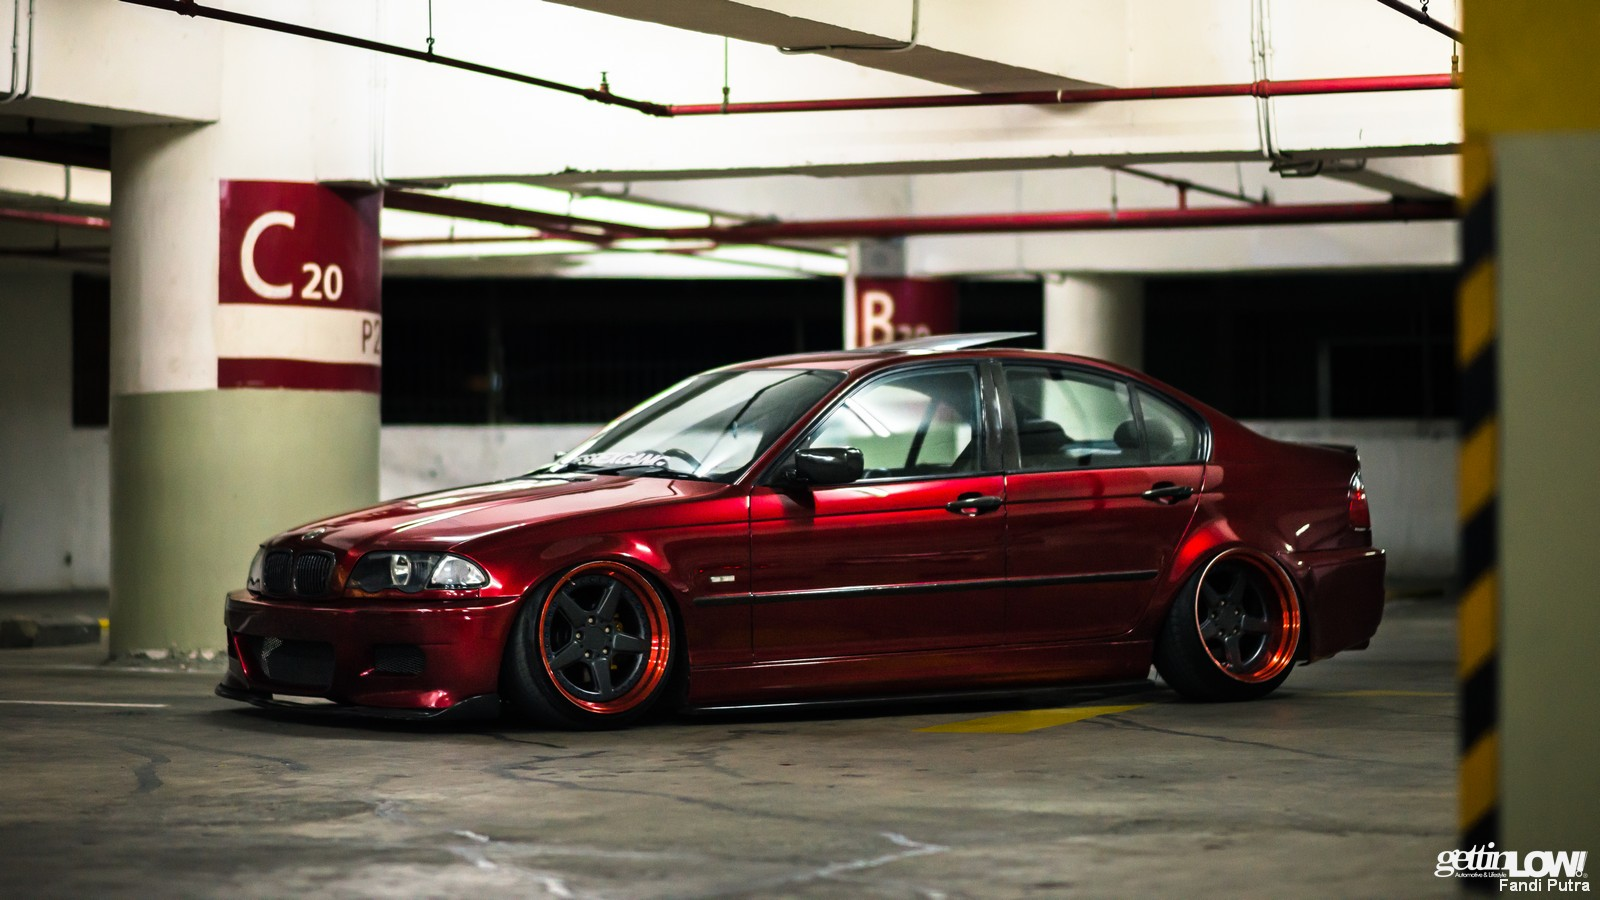 Dendy Apriyandi Bagged BMW E46 318i